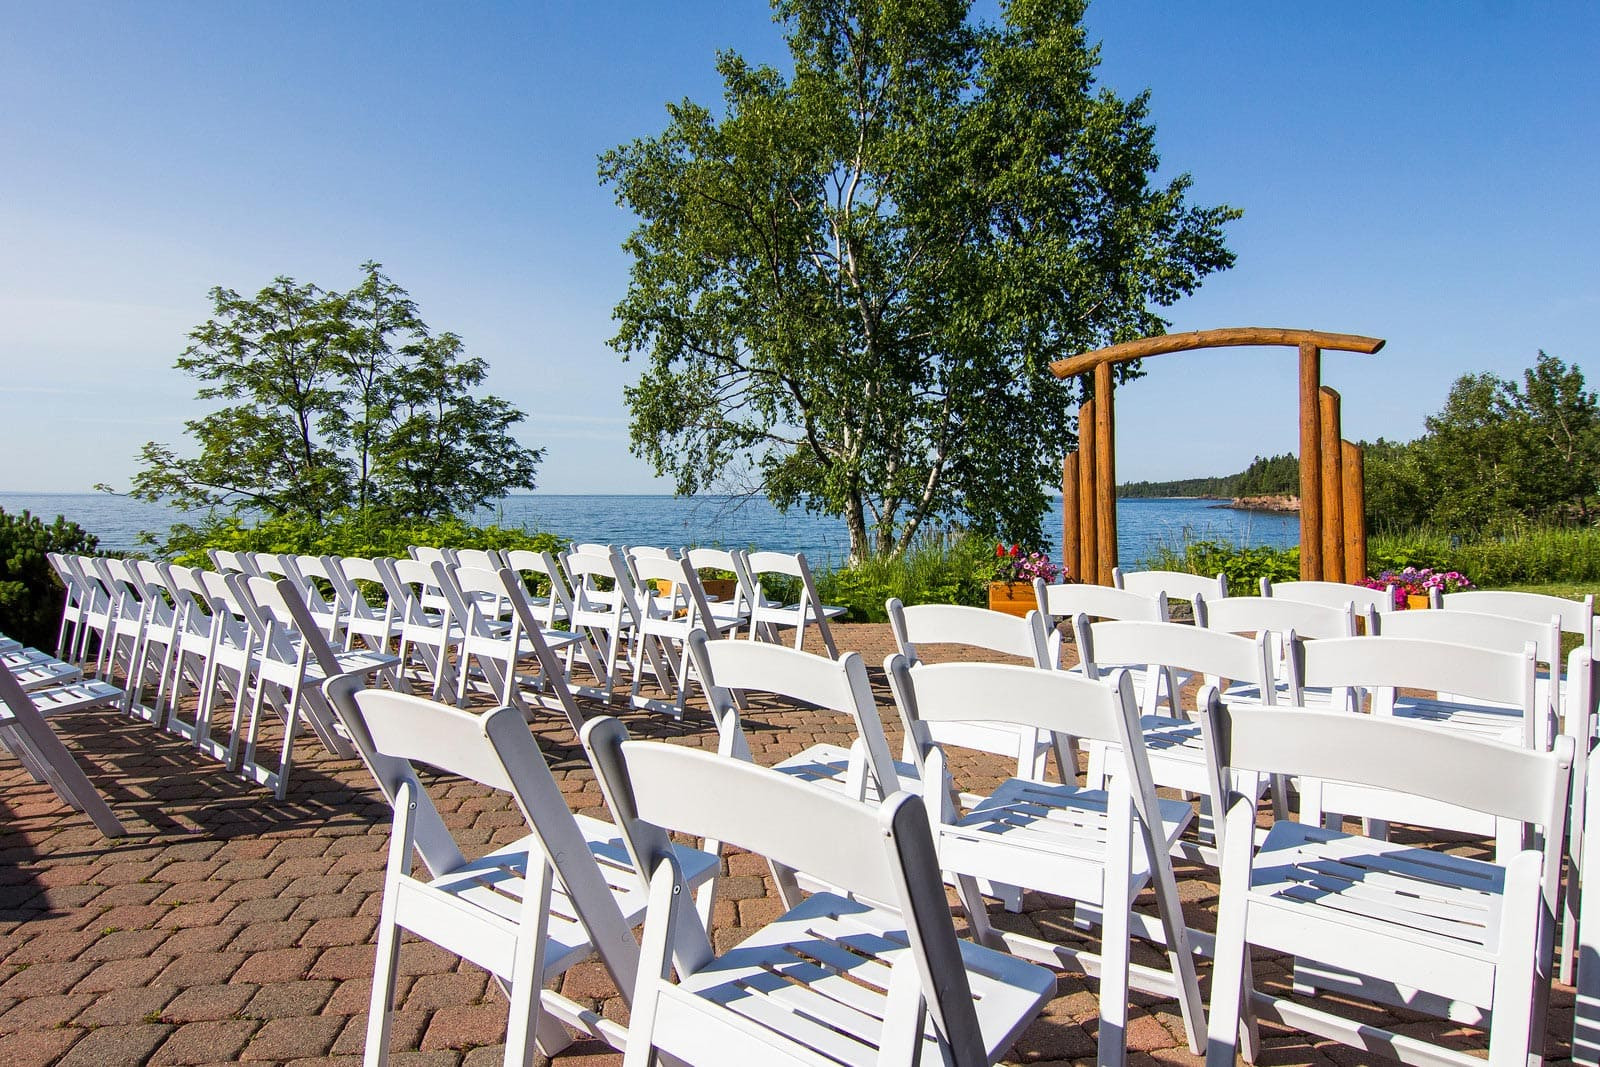 Wedding Venues Mn  MN Wedding Venue on Lake Superior Where Memories are Made